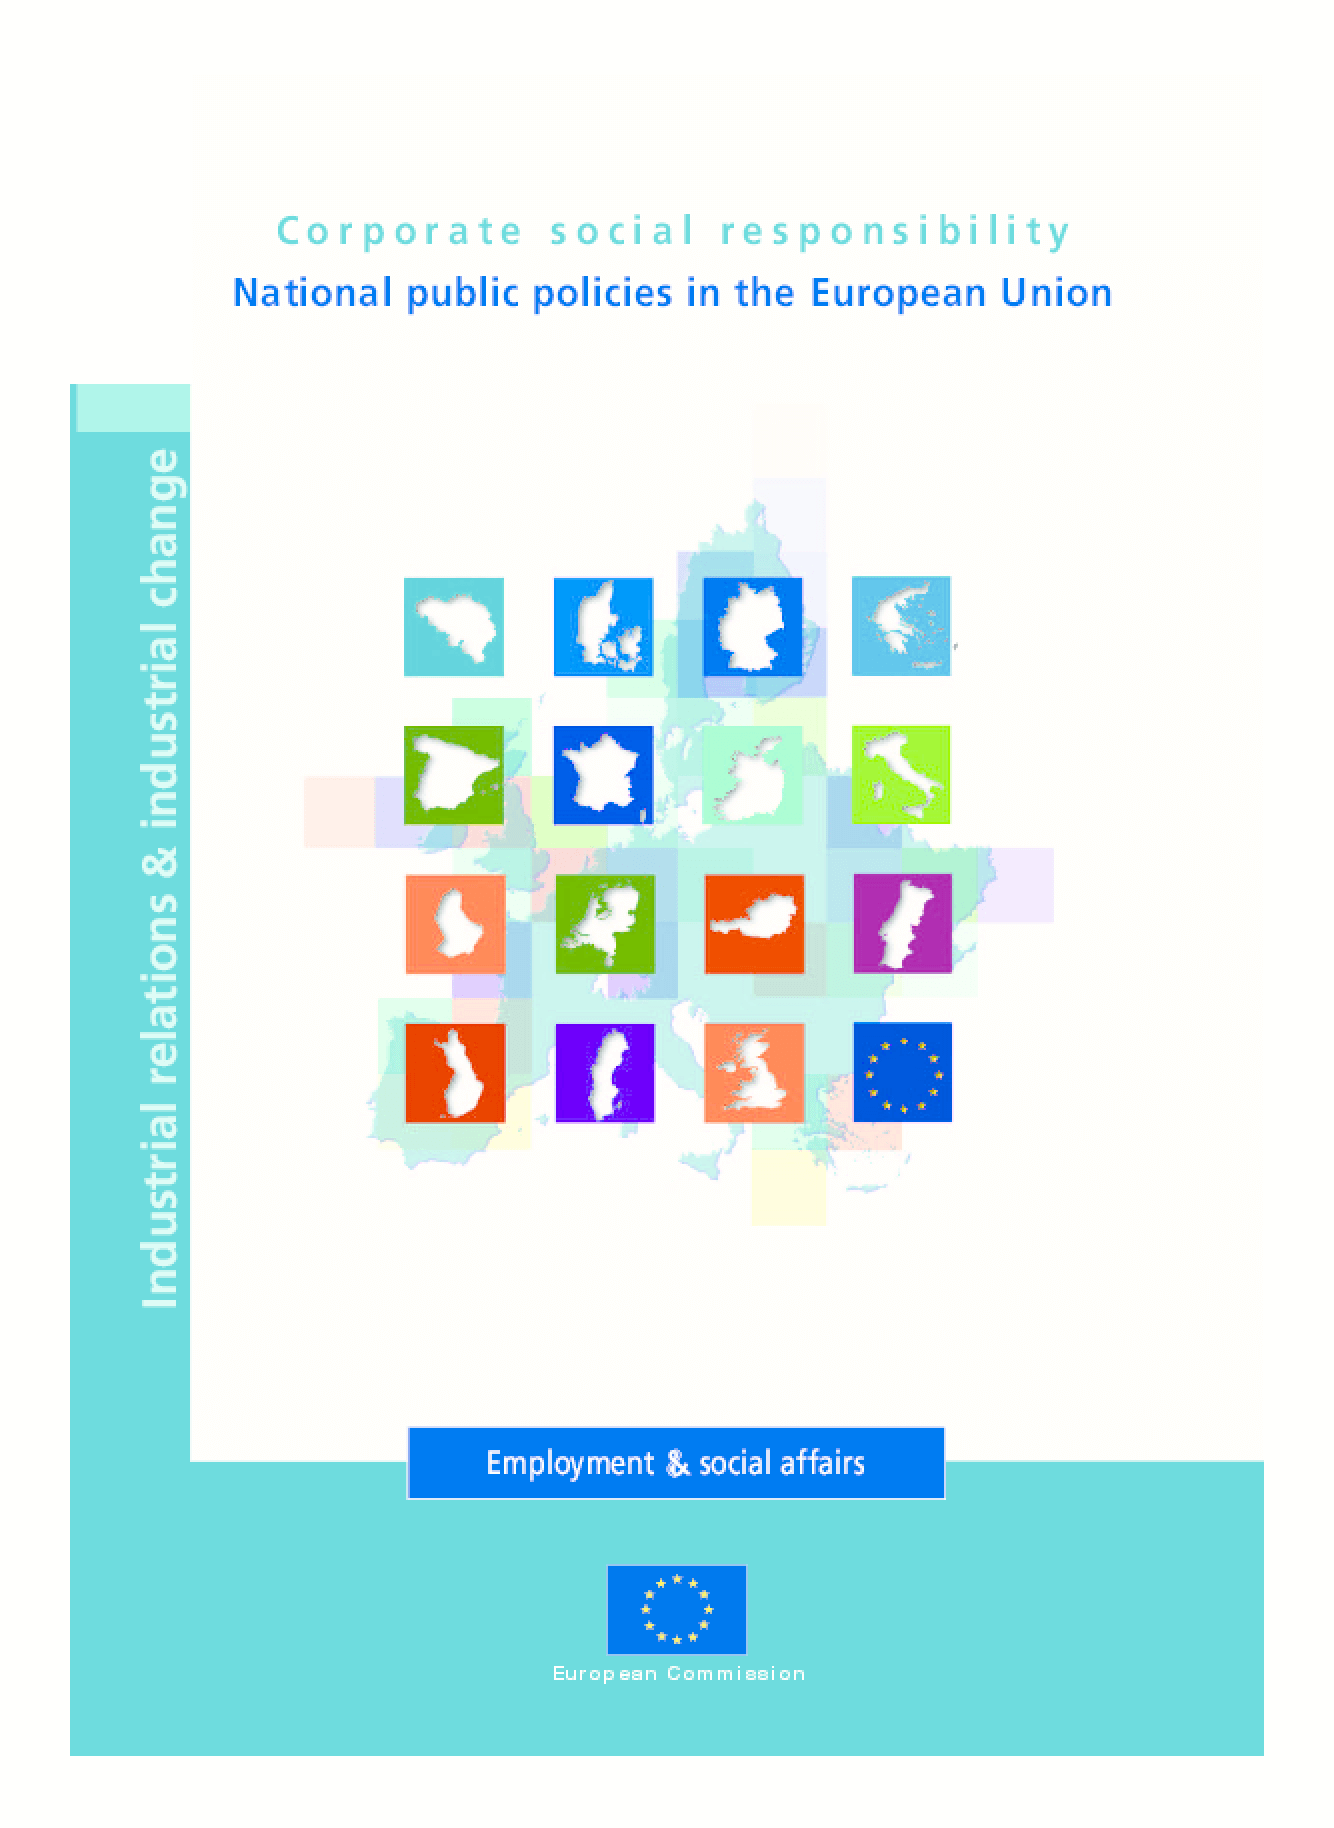 Corporate Social Responsibility: National Public Policies in the European Union